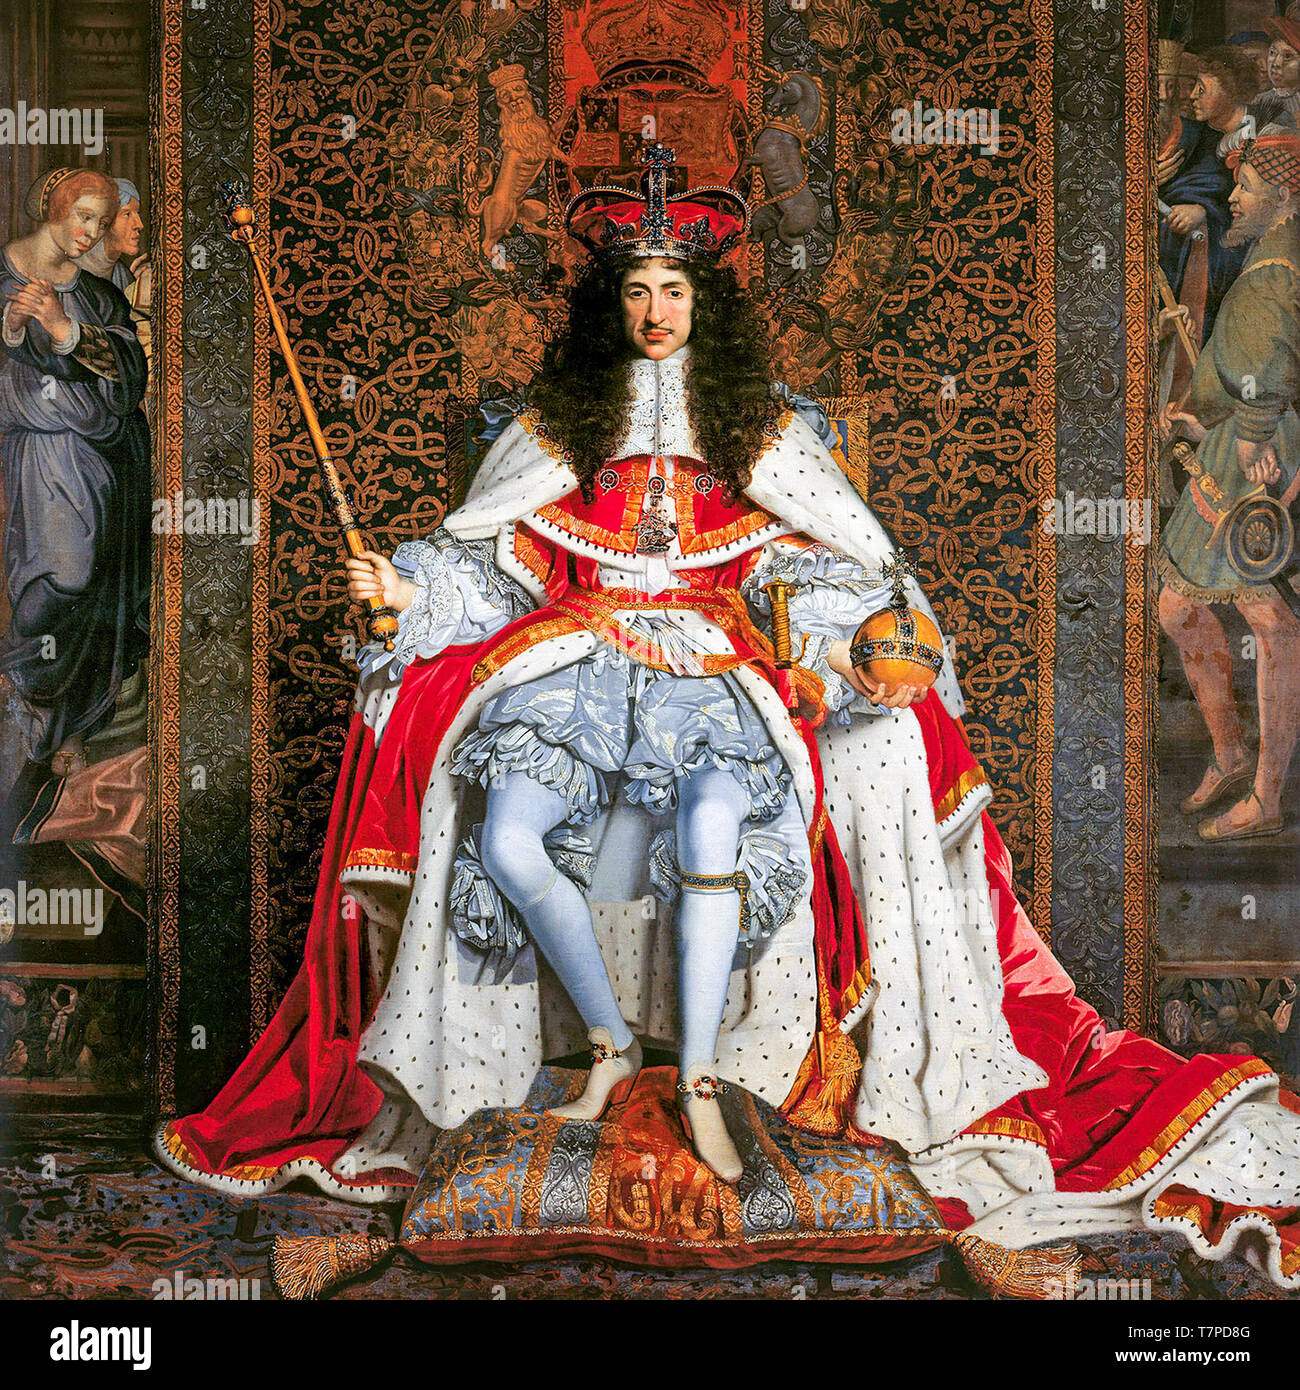 Charles II of England in Coronation robes, portrait painting by John Michael Wright, c. 1661 - Stock Image